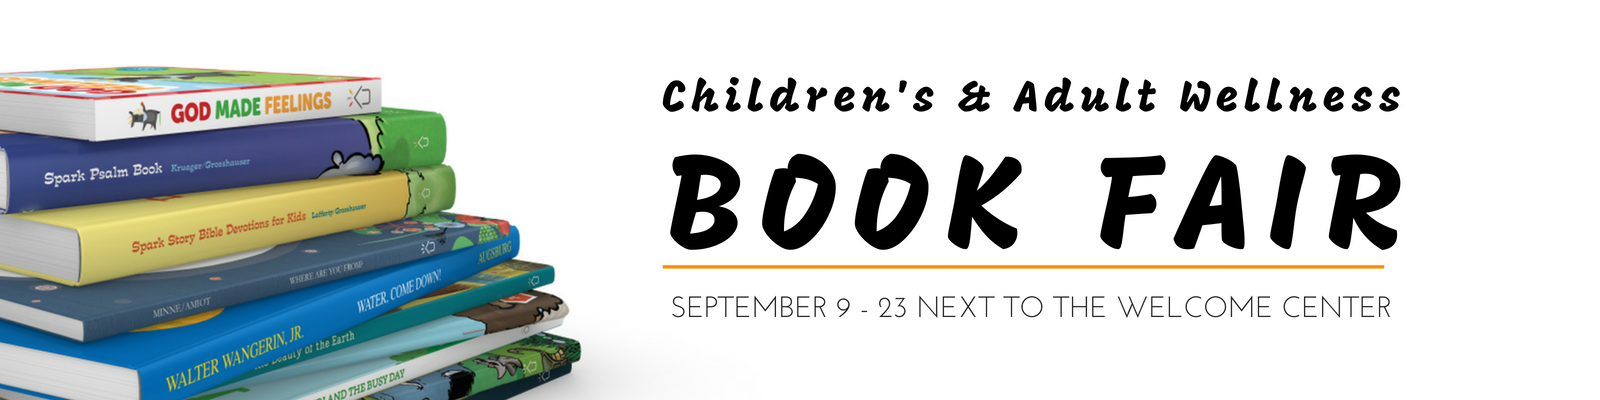 Children's and Adult Book Fair at St. John Lutheran in Ely, IA